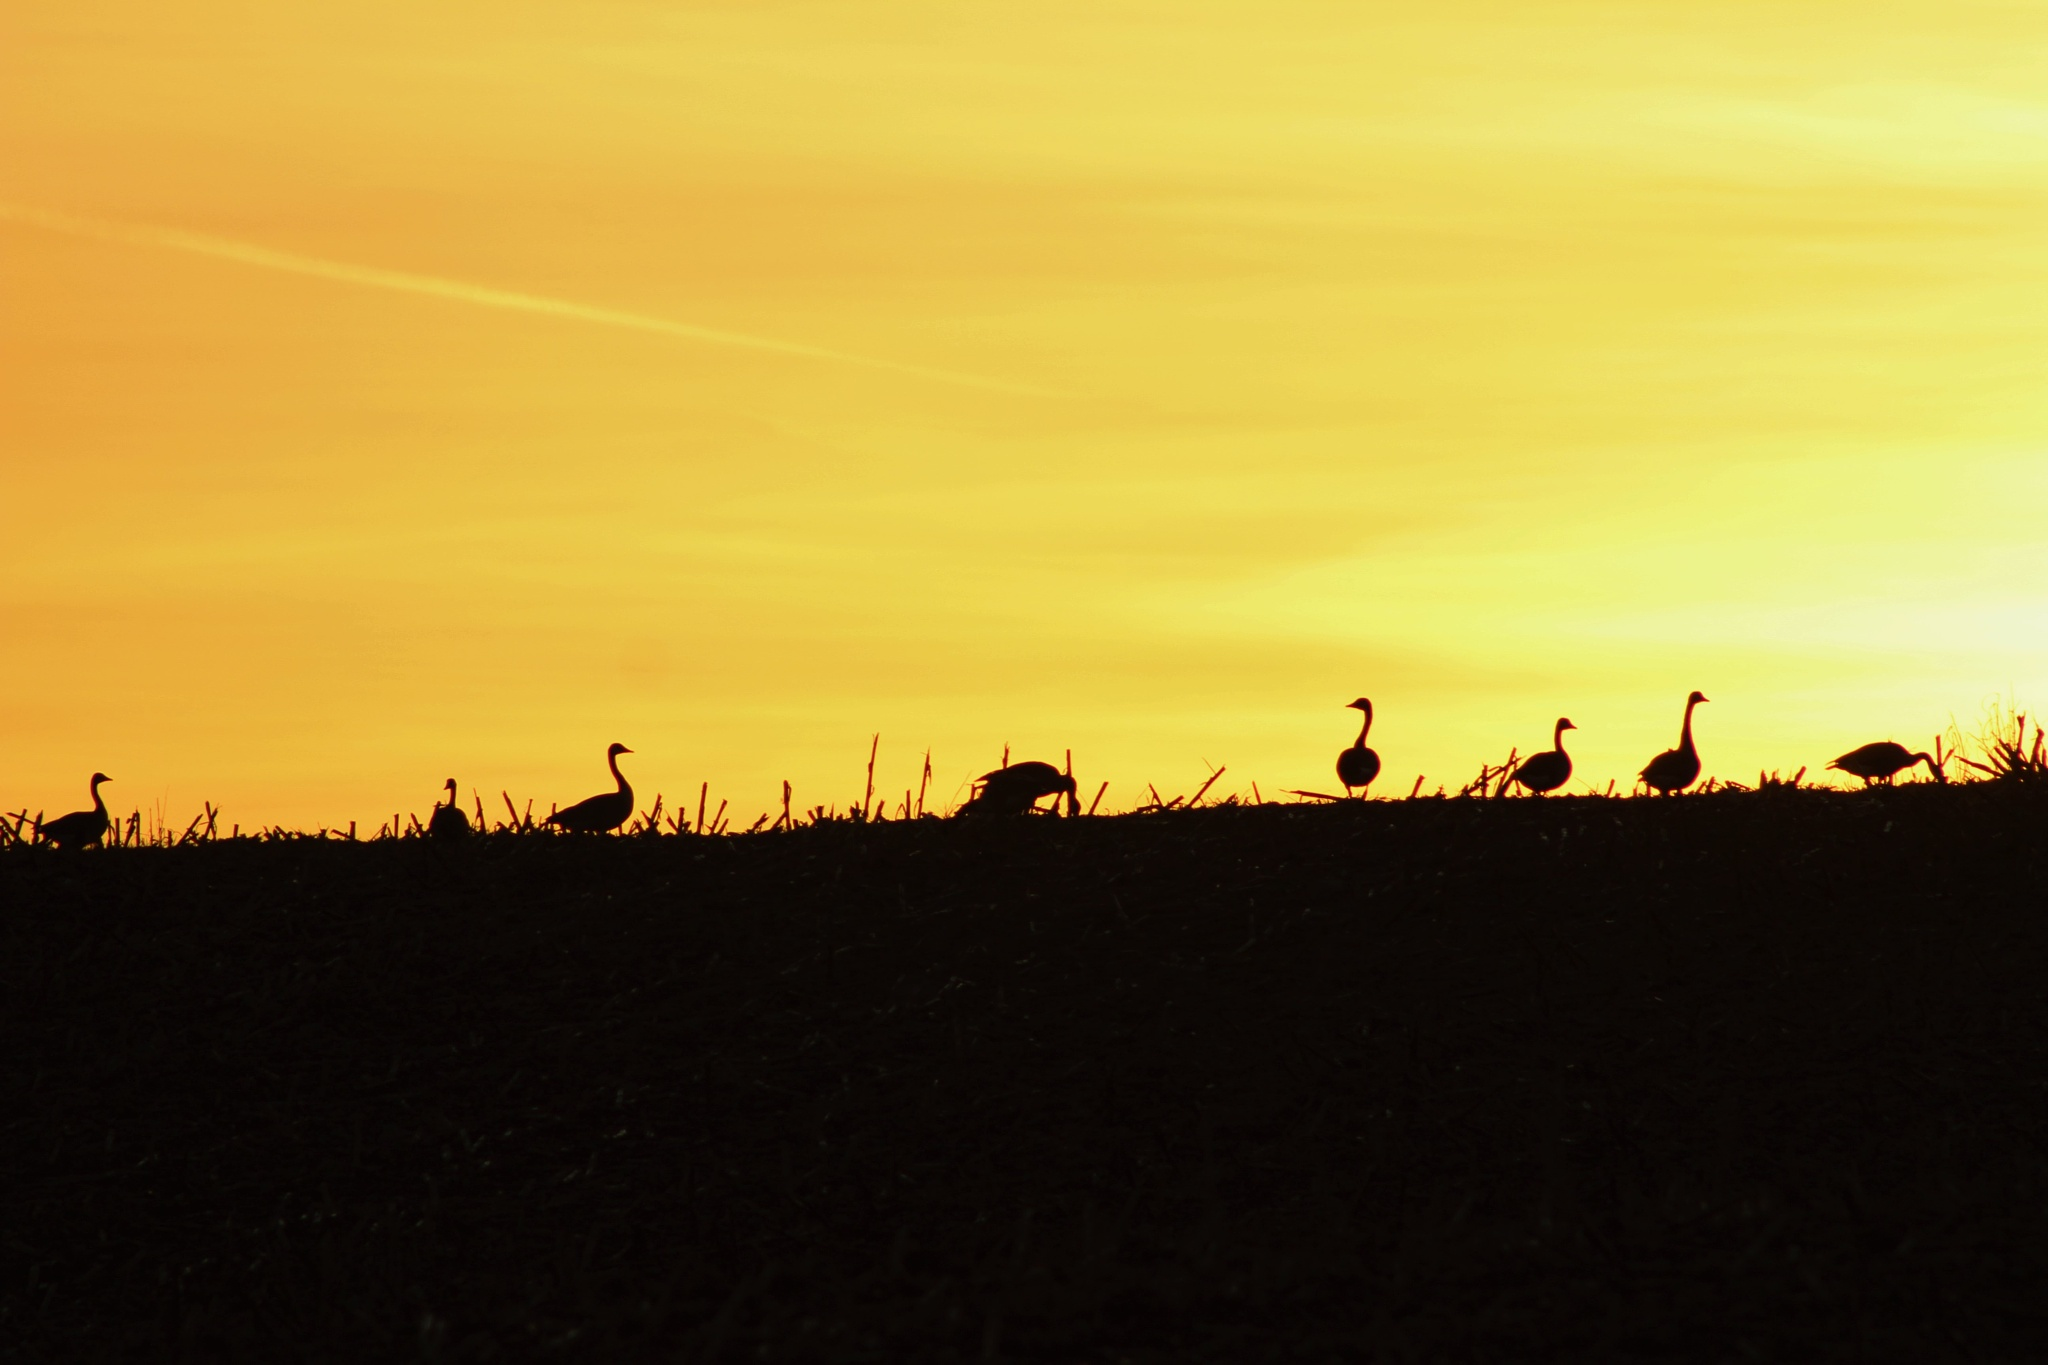 Geese at Dusk by Auggie23